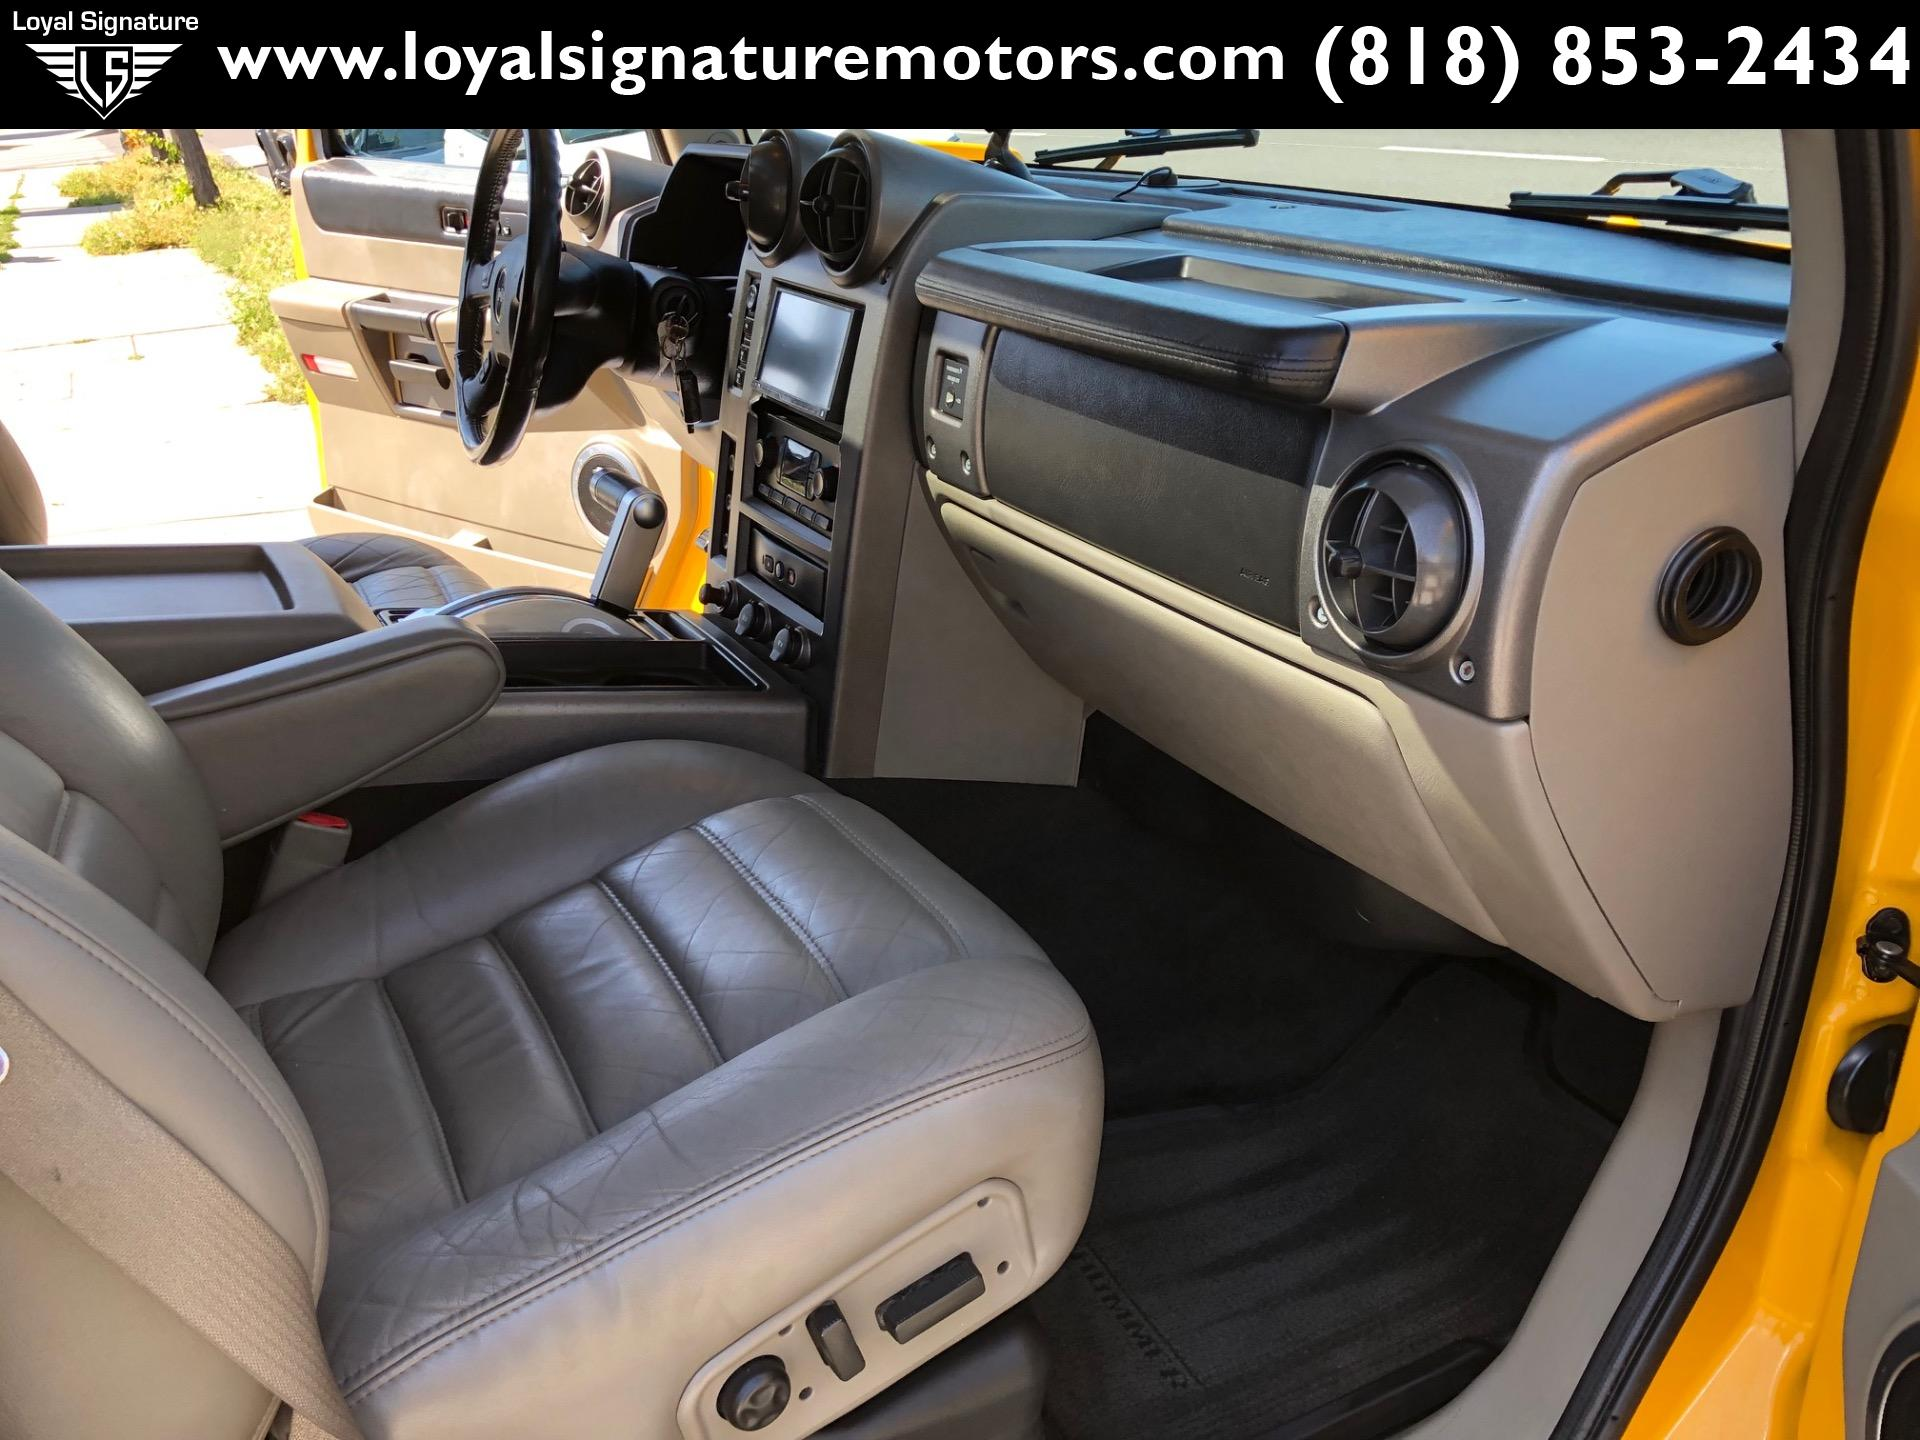 Used-2004-HUMMER-H2-Lux-Series